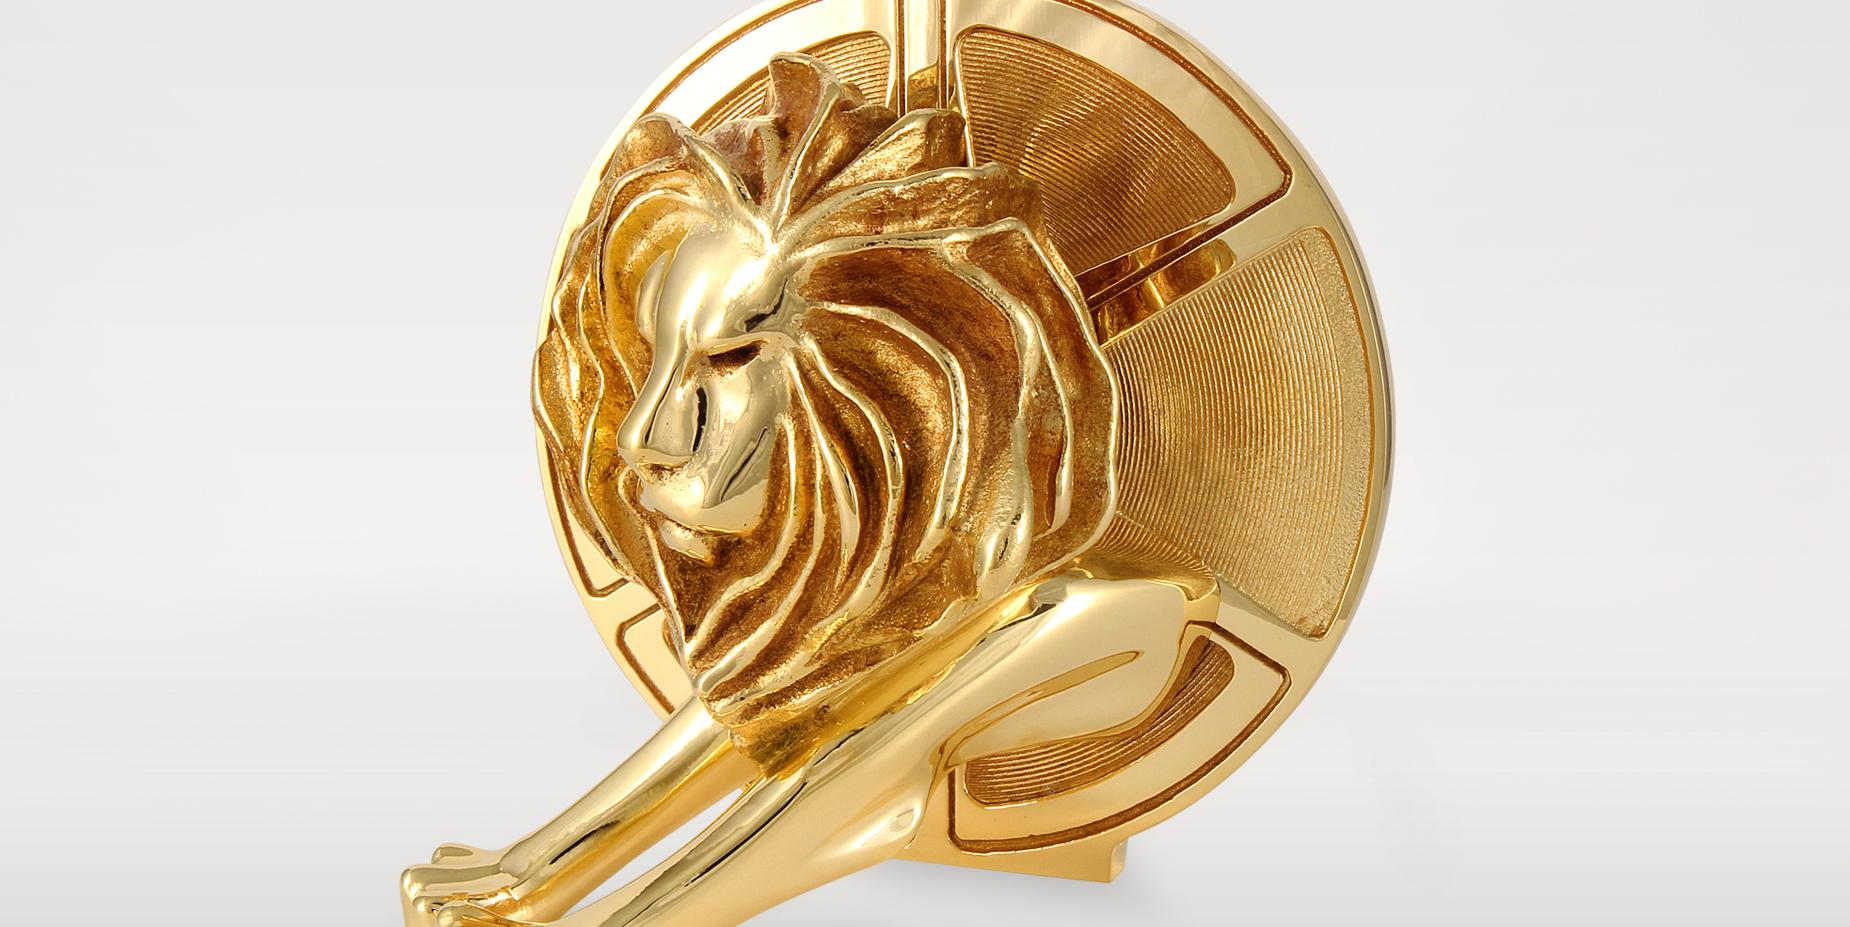 """Cannes ad fest adds """"Glass Lion"""" award for ads addressing gender issues http://t.co/zKyKthrZm7 http://t.co/GbxHIjG5uC"""